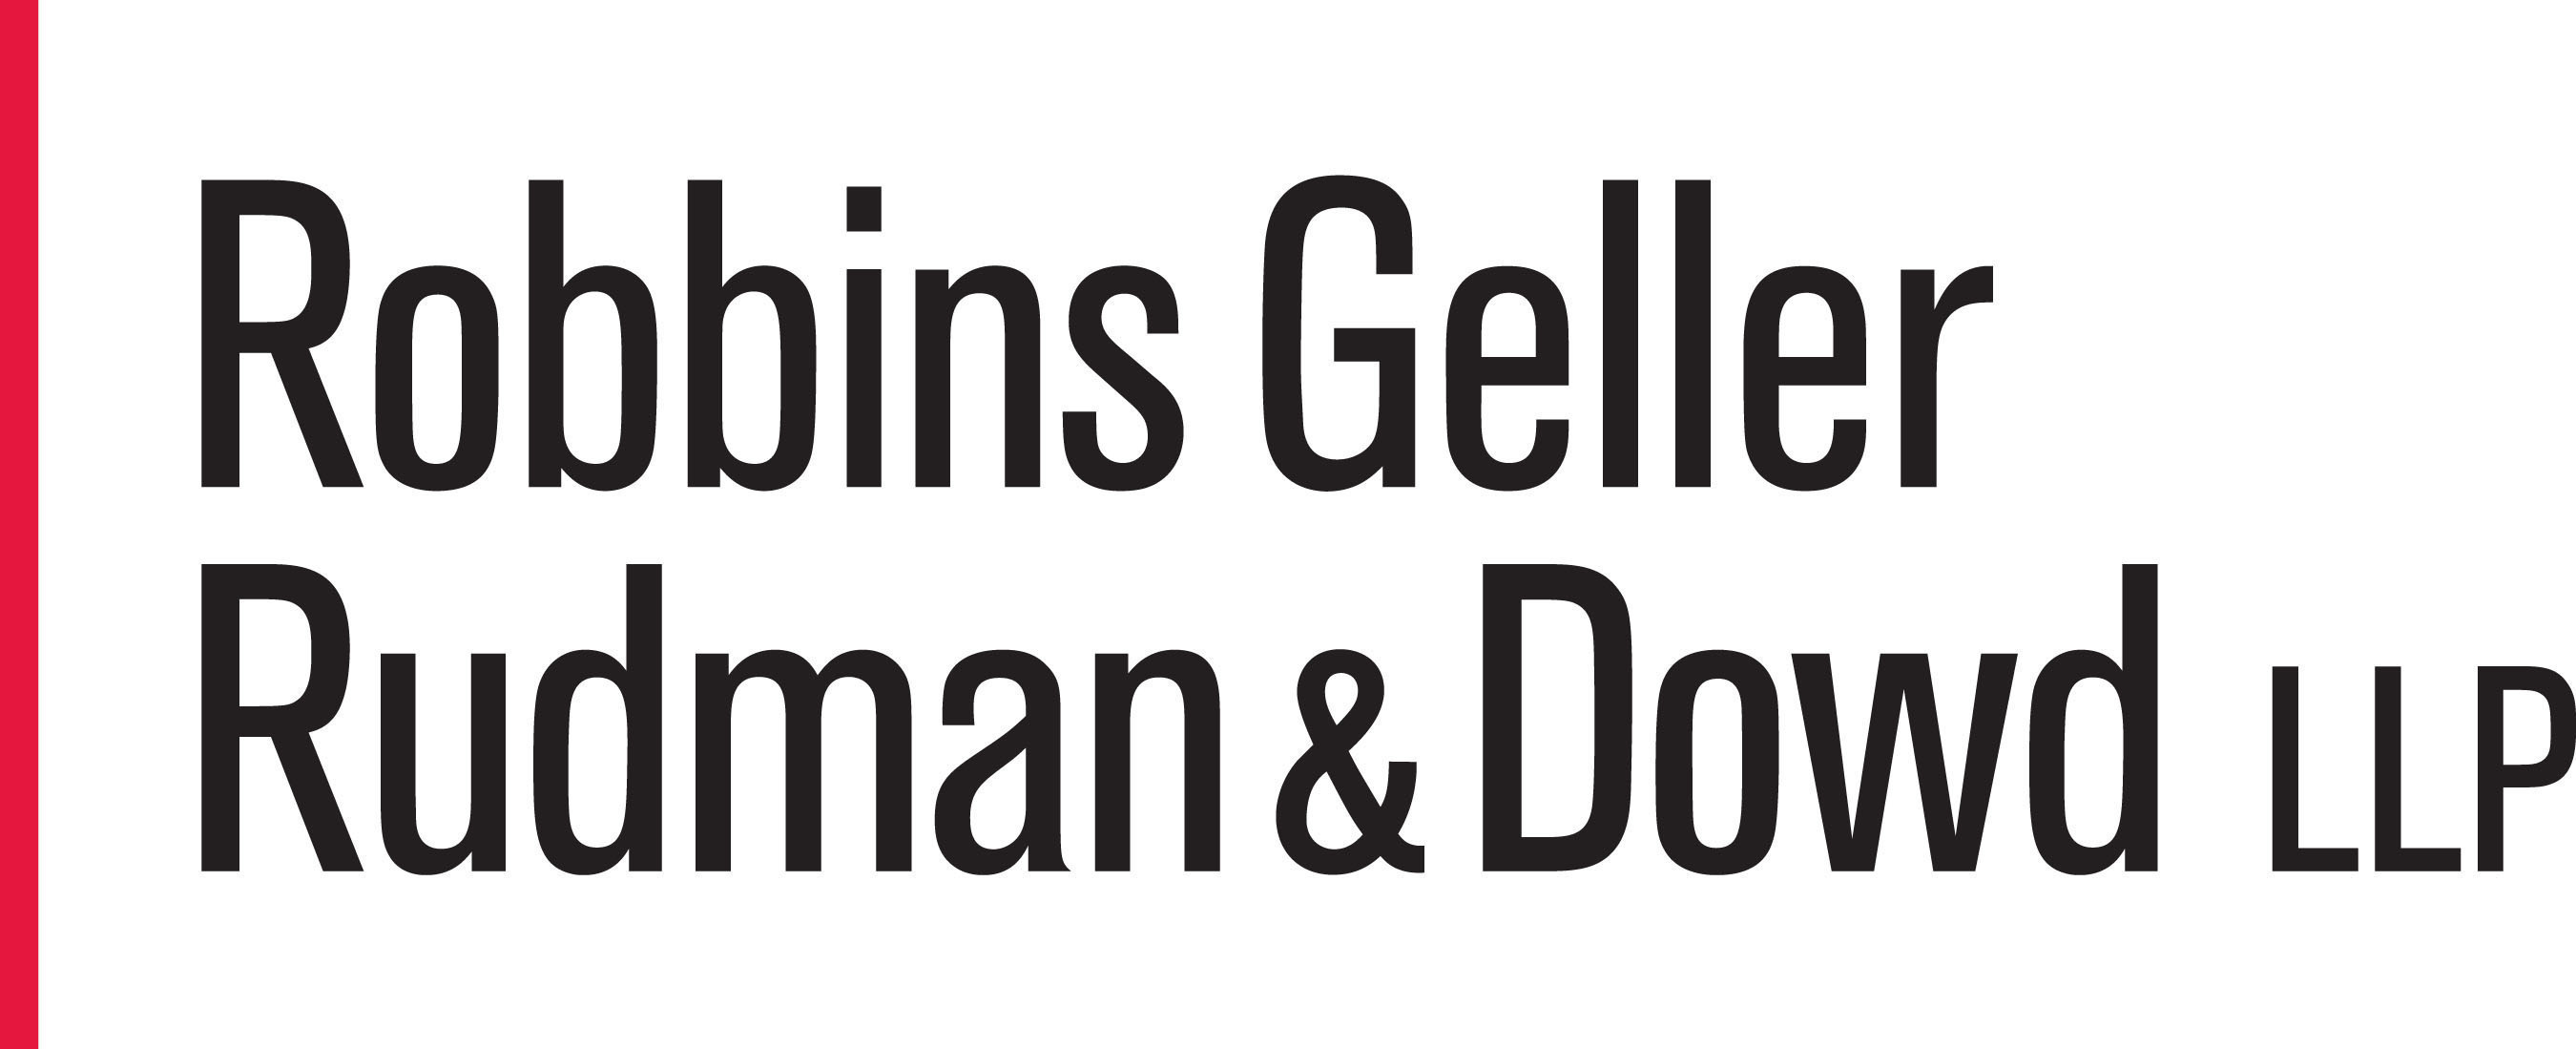 Robbins Geller, with 200 lawyers in ten offices, represents U.S. and international institutional investors in contingency-based securities and corporate litigation. The firm has obtained many of the largest securities class action recoveries in history, including the largest securities class action judgment. Please visit  http://www.rgrdlaw.com for more information. (PRNewsFoto/Robbins Geller Rudman & Dowd LLP)